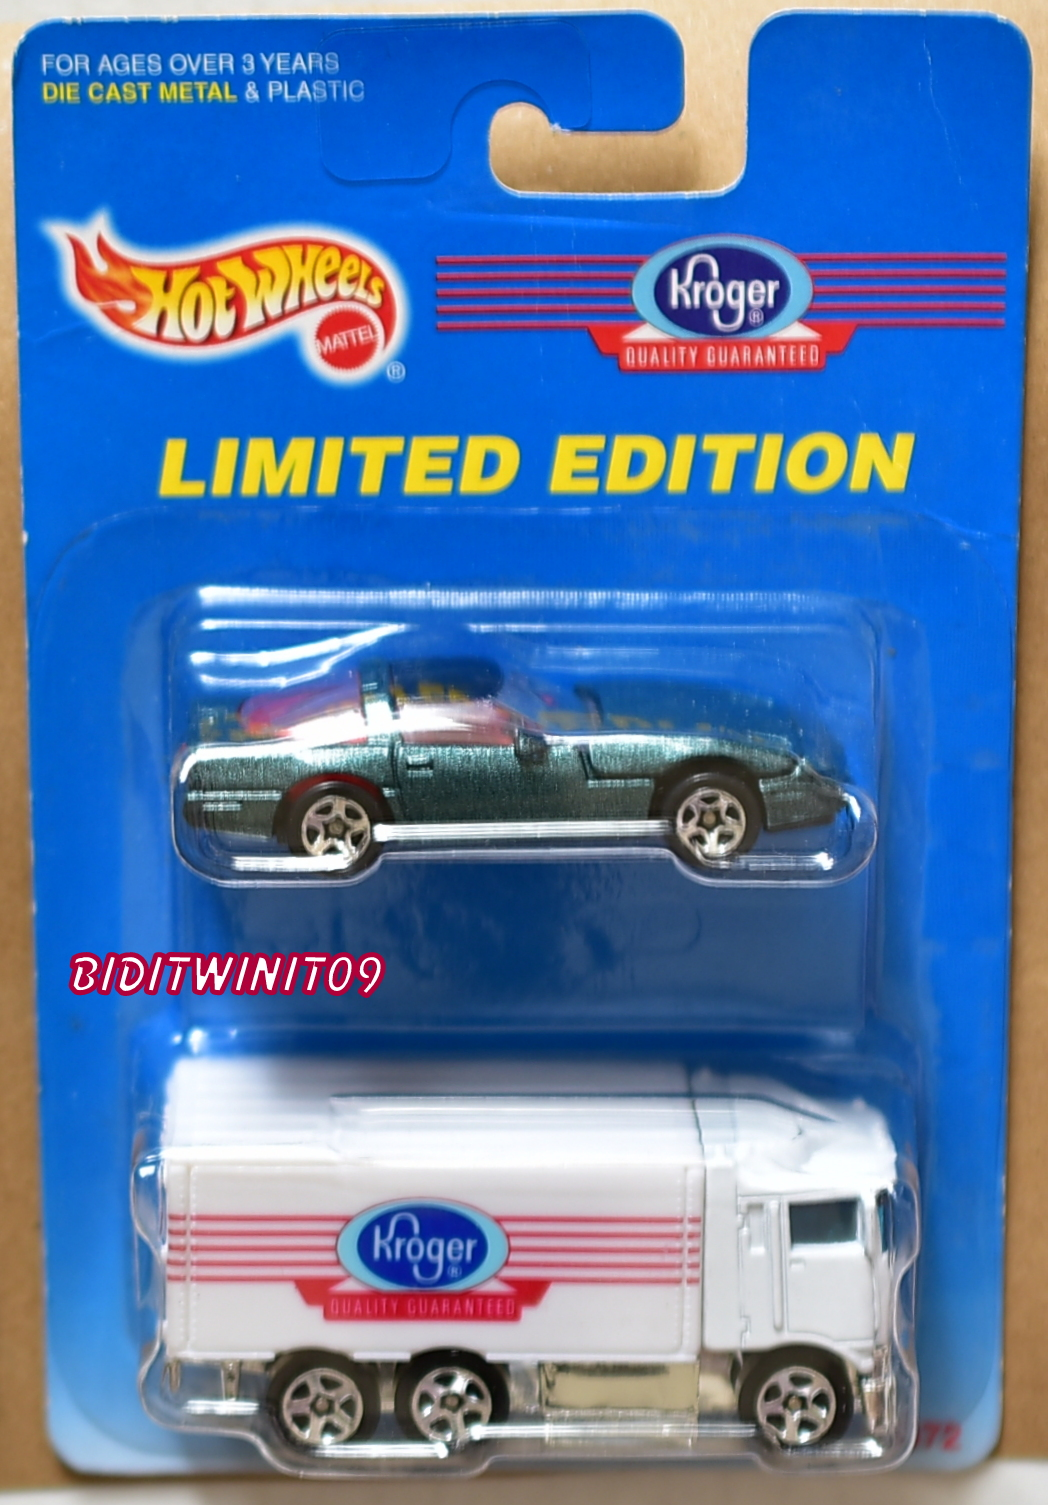 HOT WHEELS 1997 KROGER CHEVROLET CORVETTE - HIWAY HAULER 2 CAR PACK E+